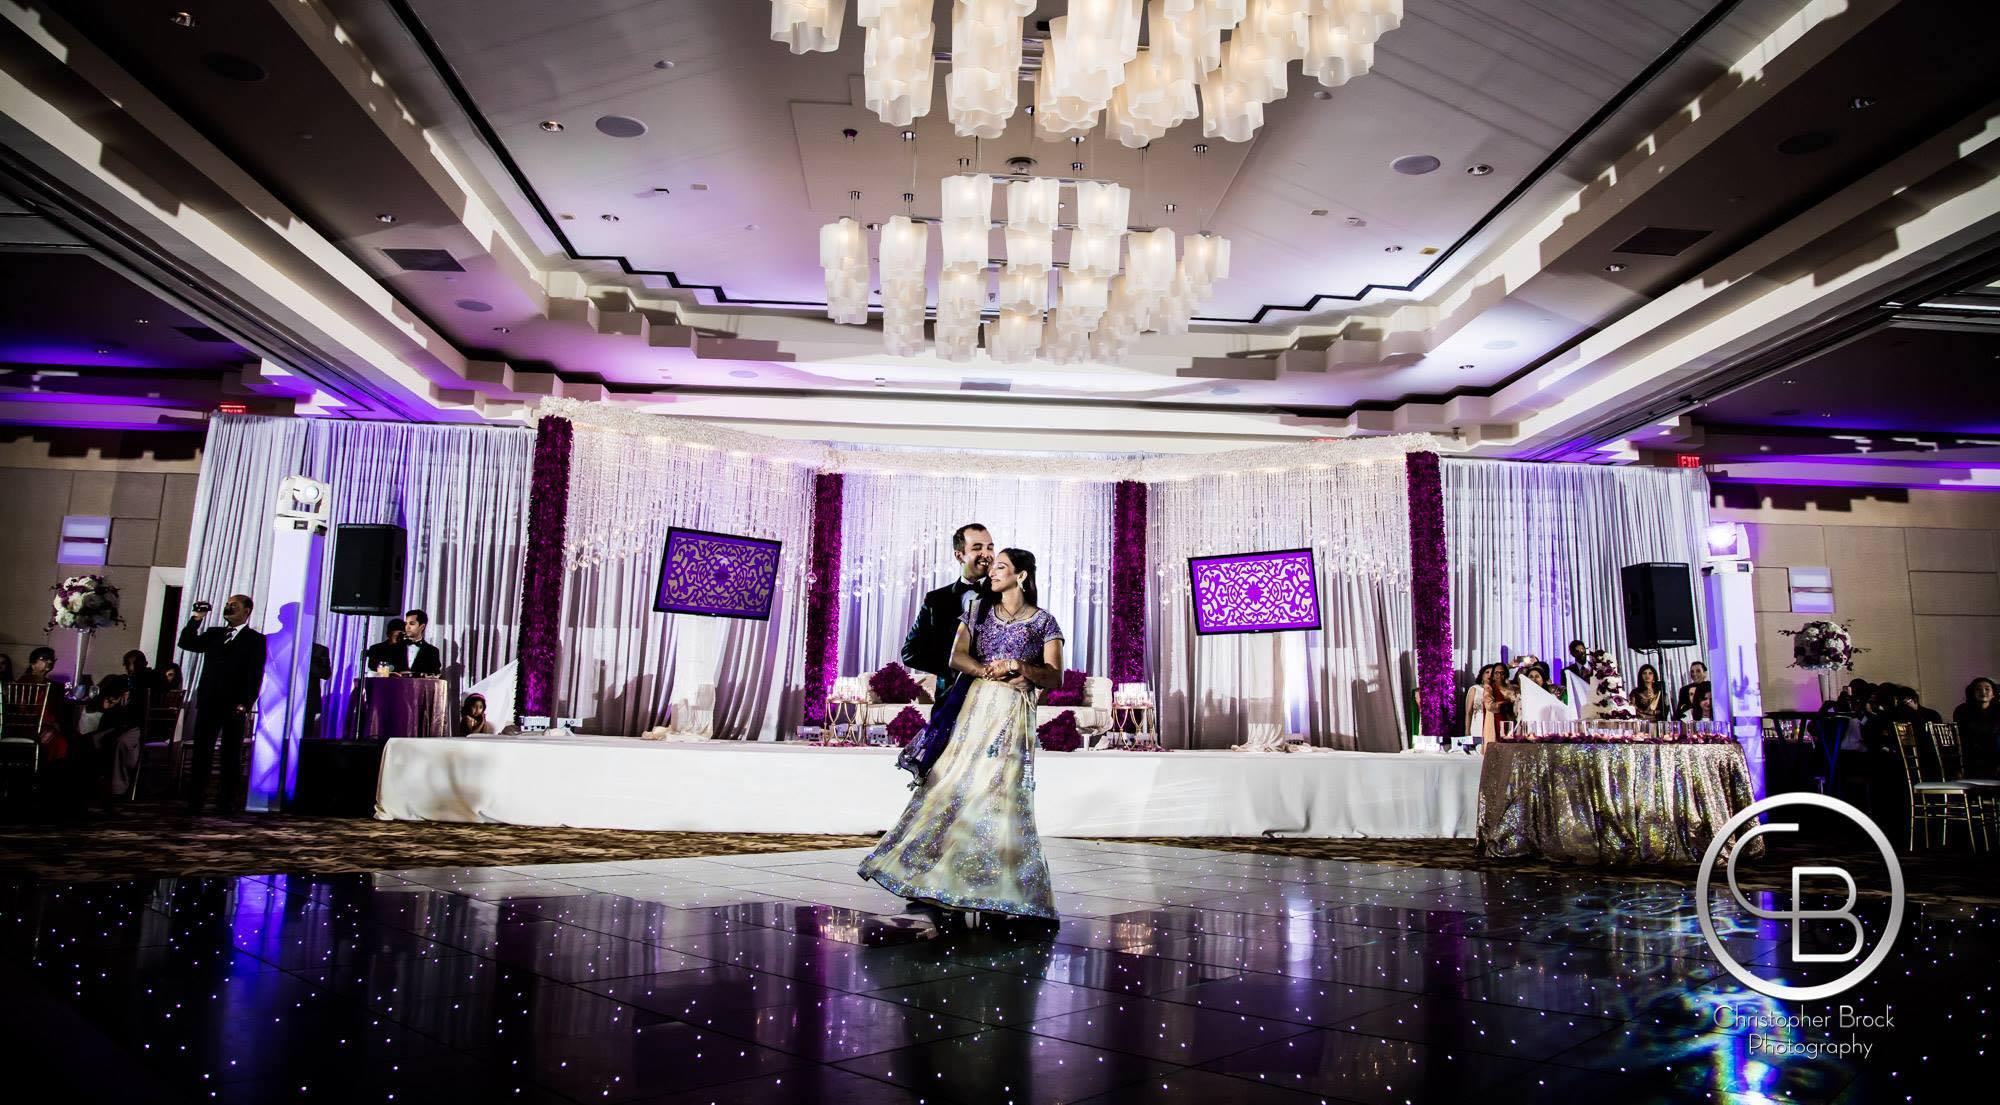 Shreya Raj - My family and I had a wonderful experience working with Shushil and the UE team. Shushil is extremely responsive and dedicated to making your event look the way you want it to look. I admit I was quite picky about flower choice, table linens, the height of centerpieces/aisleway decor and Shushil made every effort to accommodate every single request. He is also extremely organized and professional, and even if our meetings went for hours, I never felt rushed by him. We received a ton of compliments on our wedding decor, and I would certainly recommend him to family and friends.